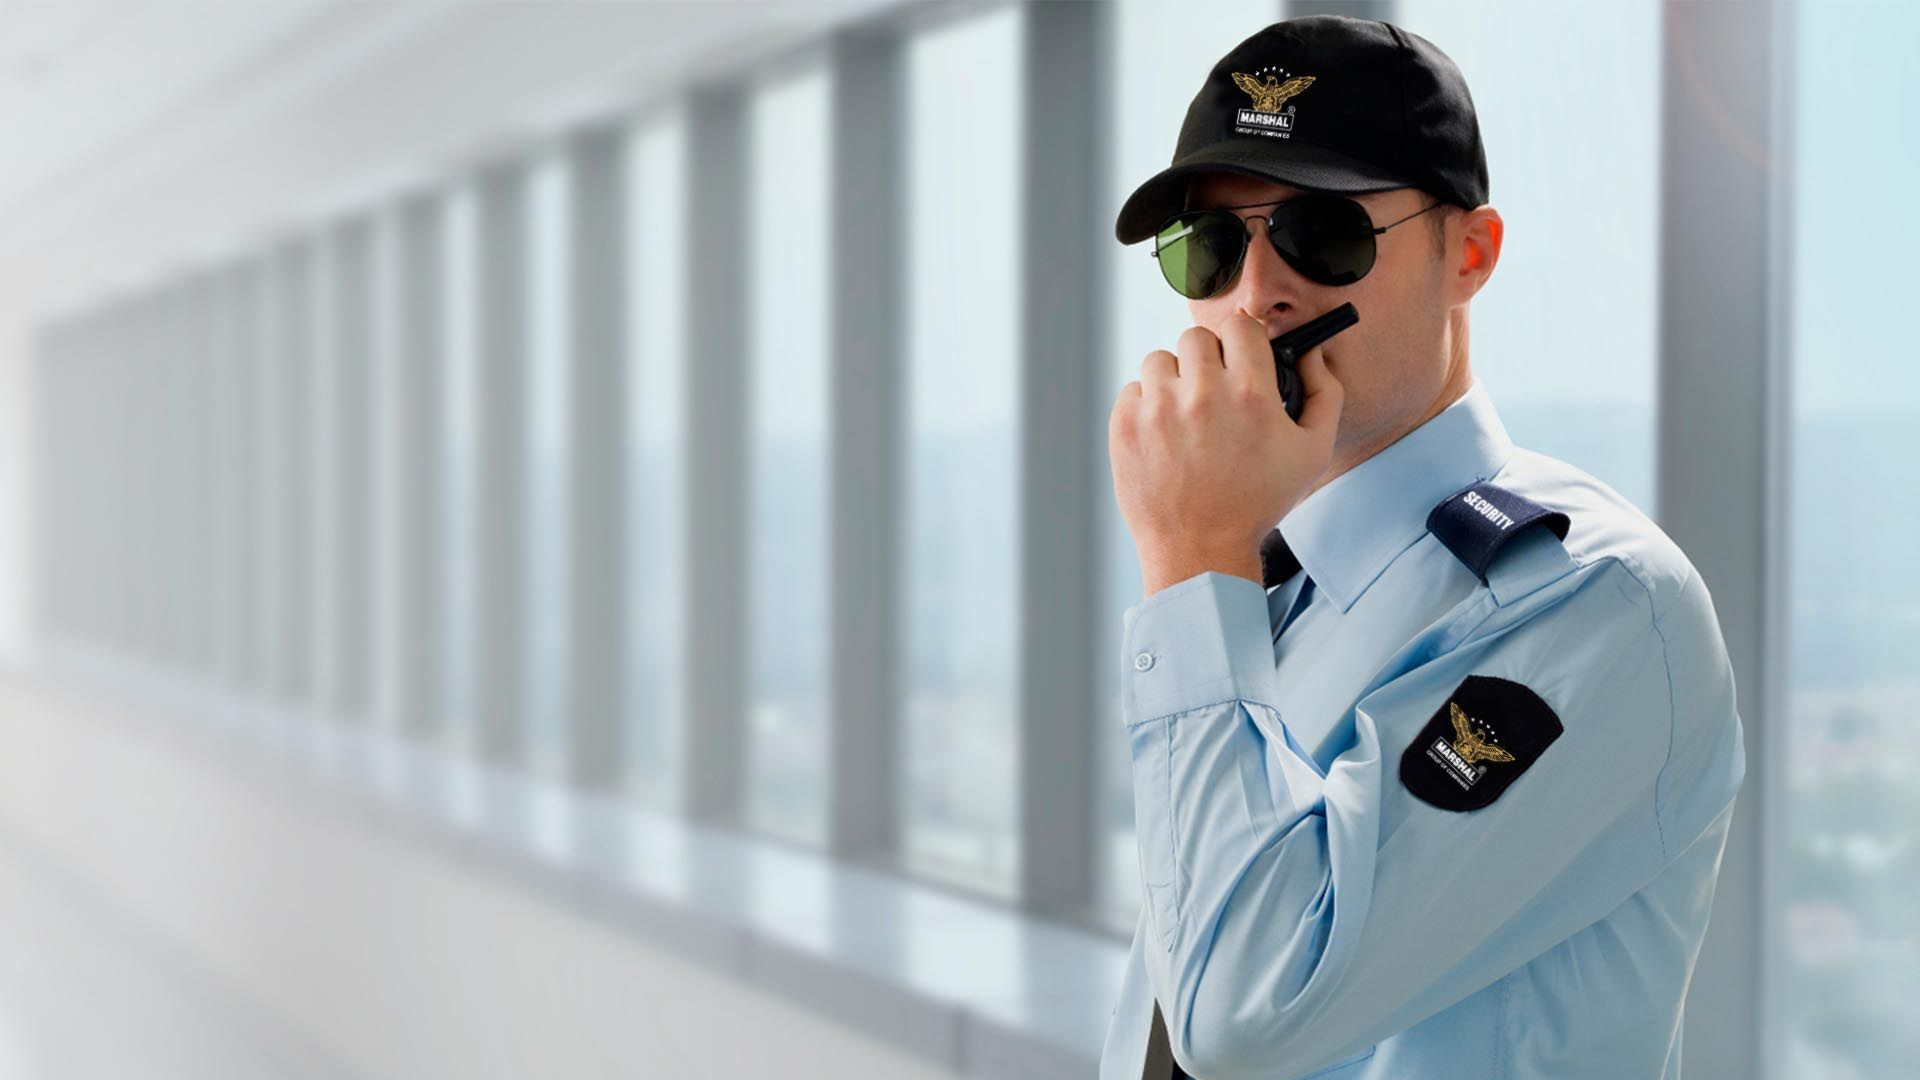 Security Guard Wallpapers - Top Free Security Guard Backgrounds - WallpaperAccess